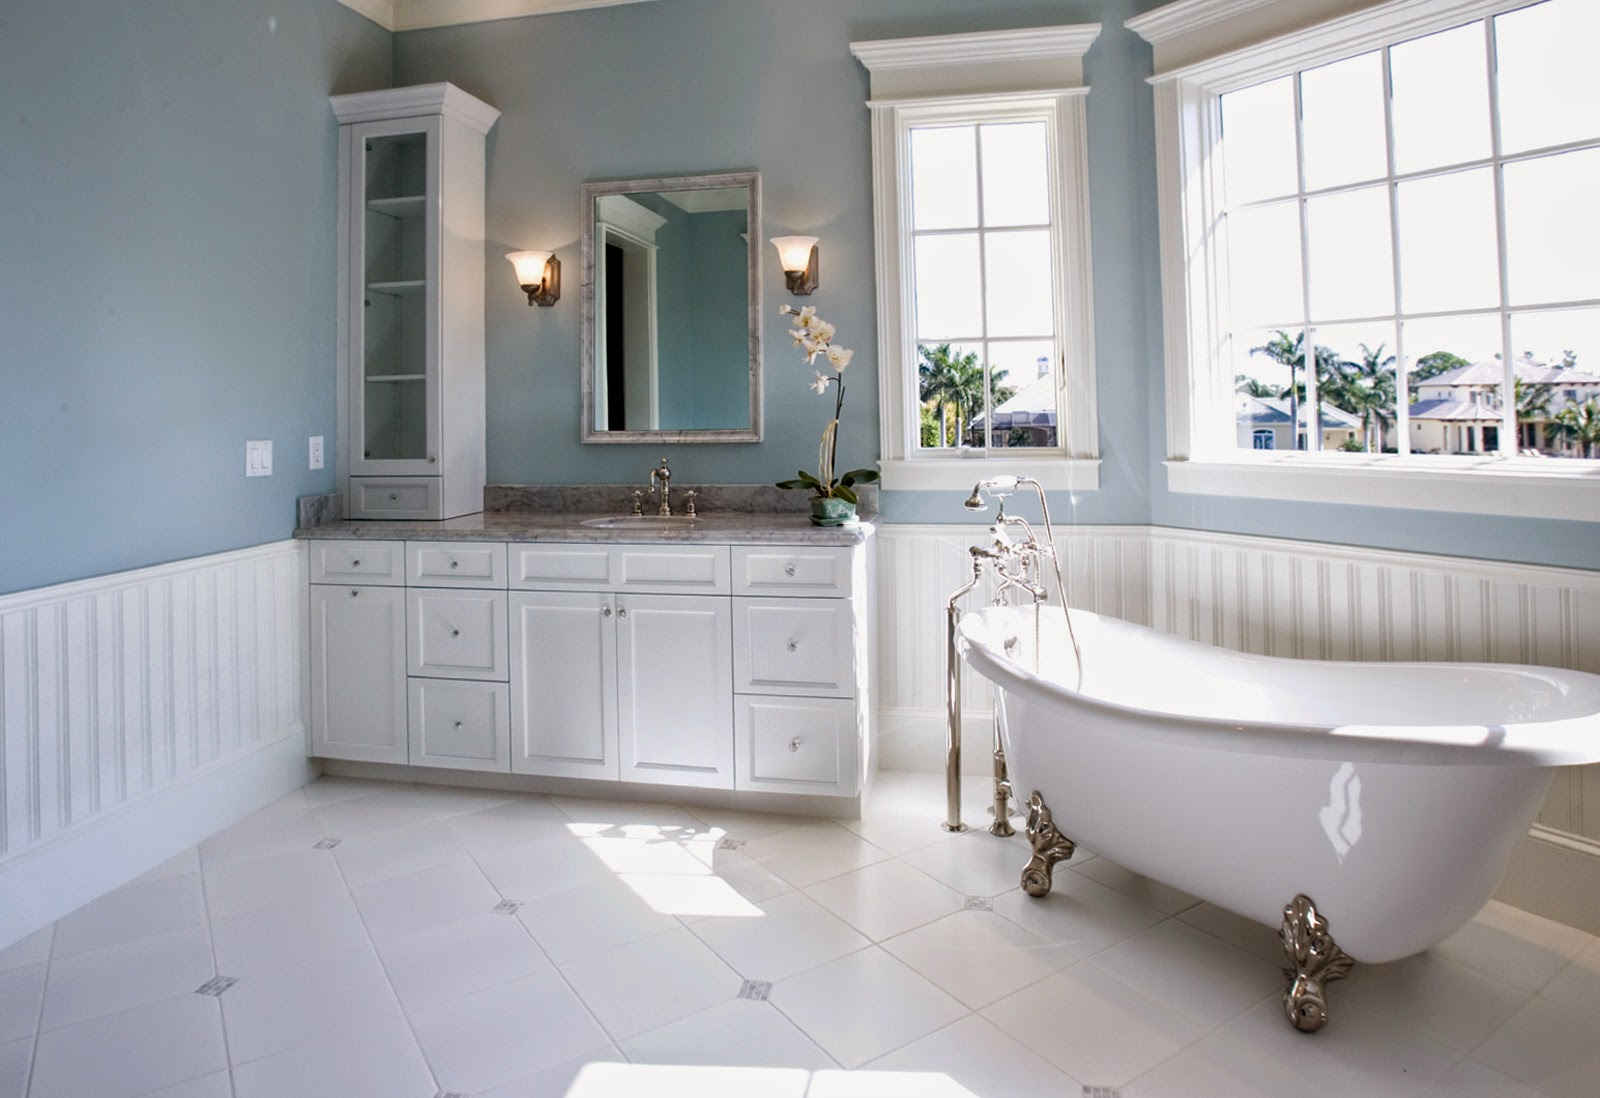 Top 10 beautiful bathroom design 2014 home interior blog for Bathtub ideas